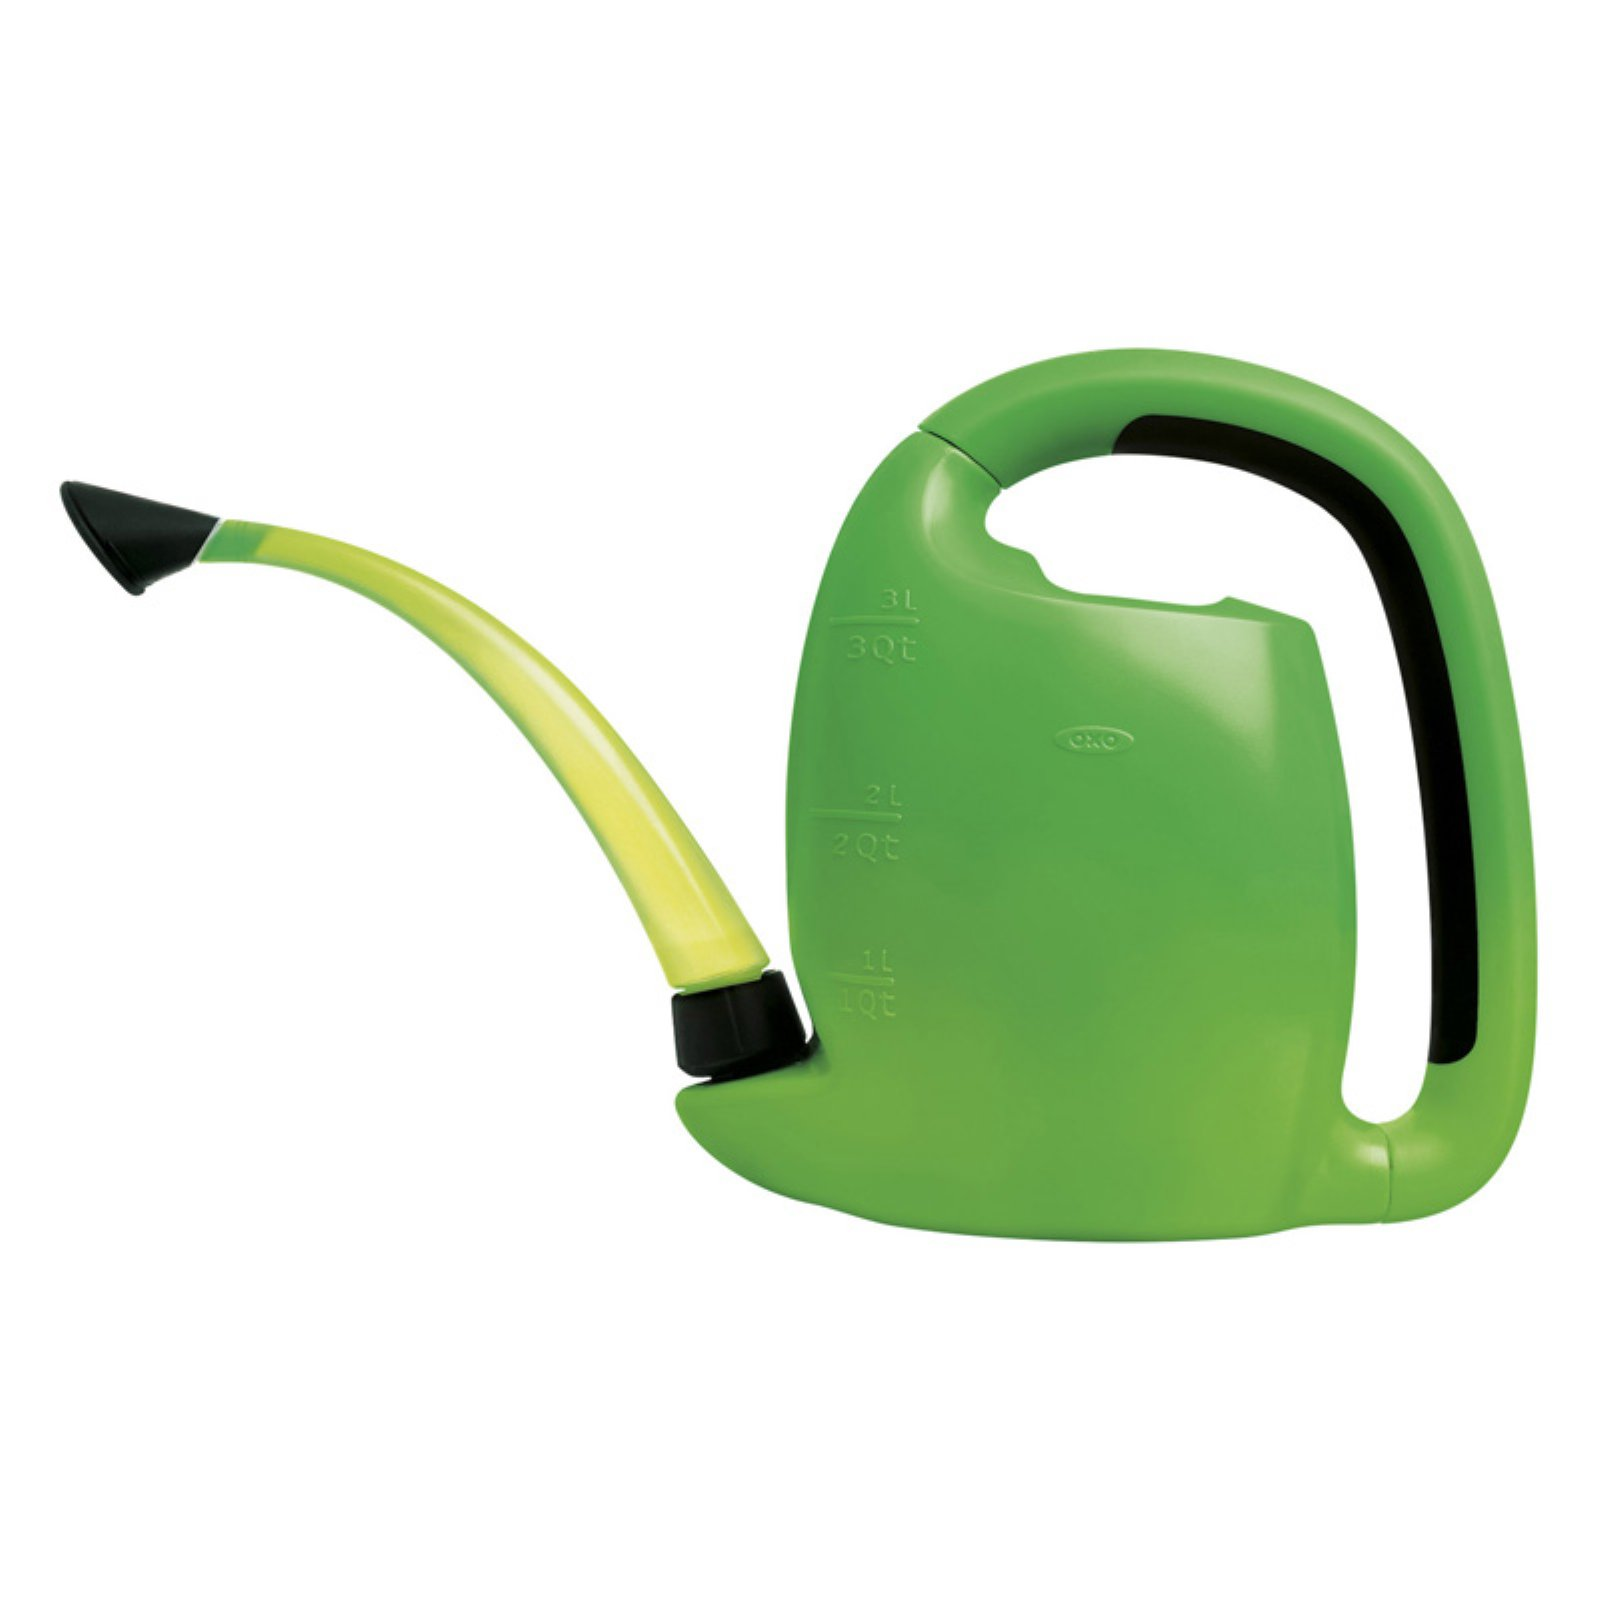 Oxo 3 Liter Good Grips Pour & Store Watering Can by OXO